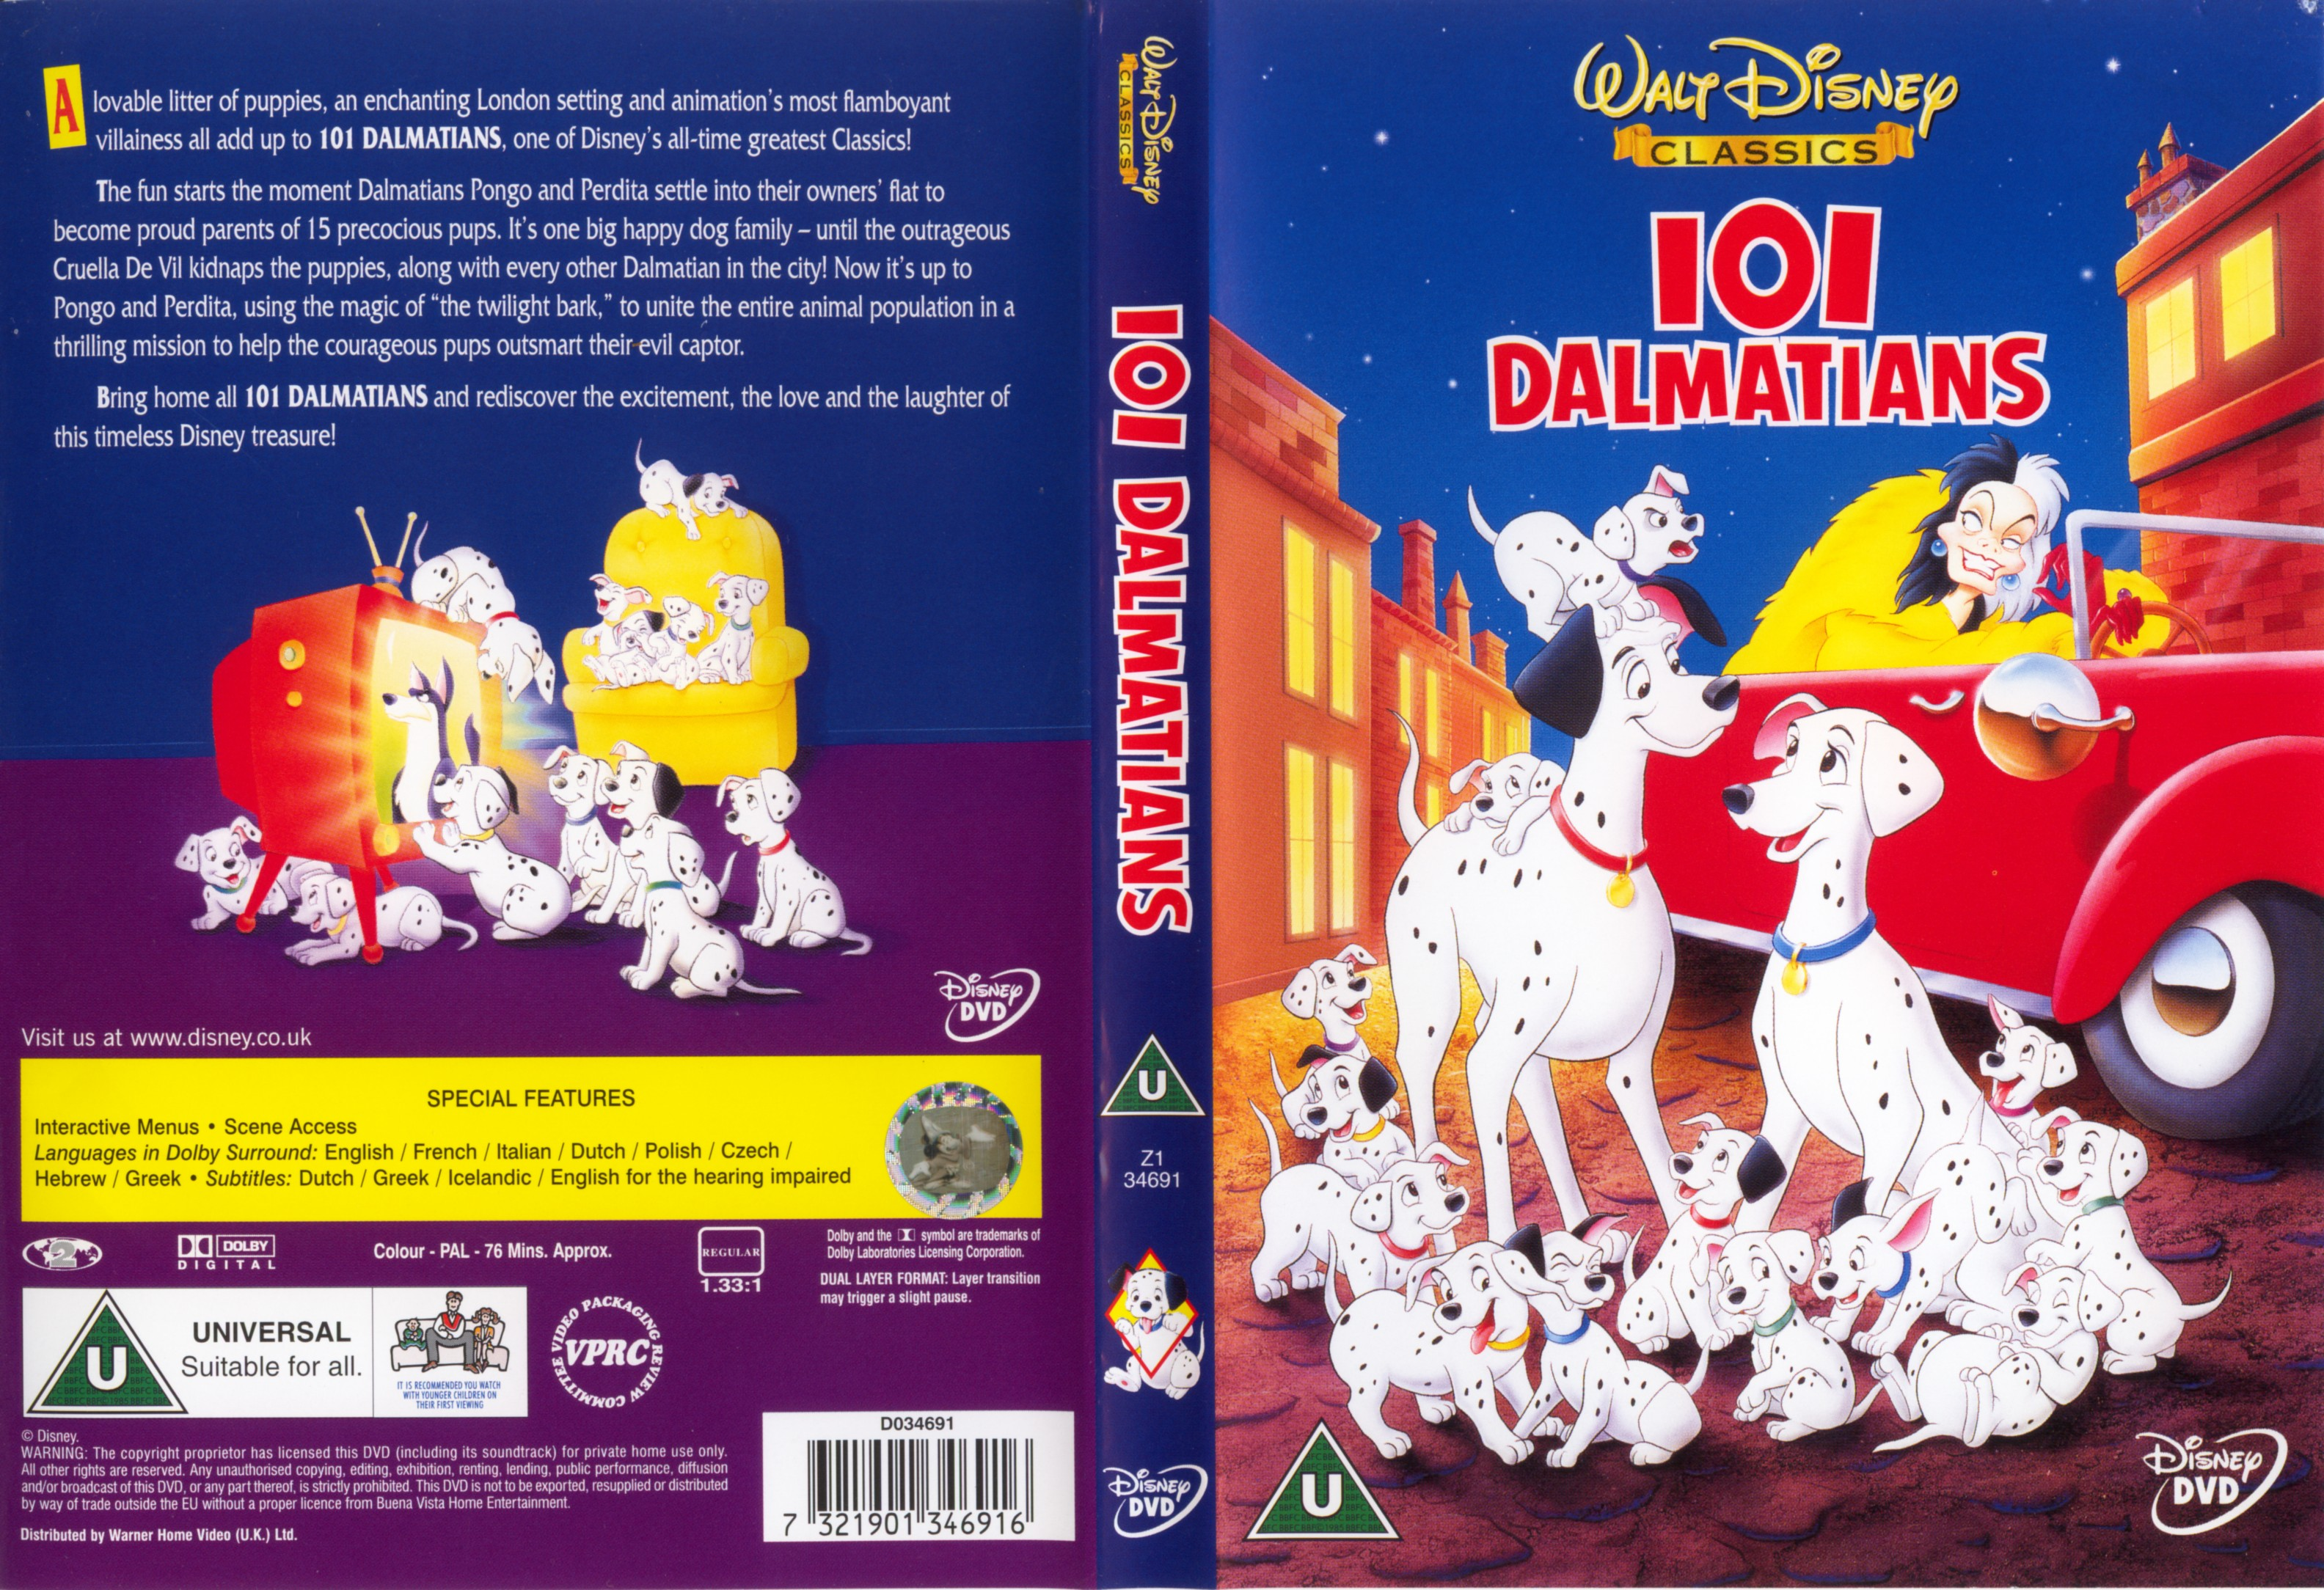 Covers Box Sk One Hundred And One Dalmatians 1961 High Quality Dvd Blueray Movie